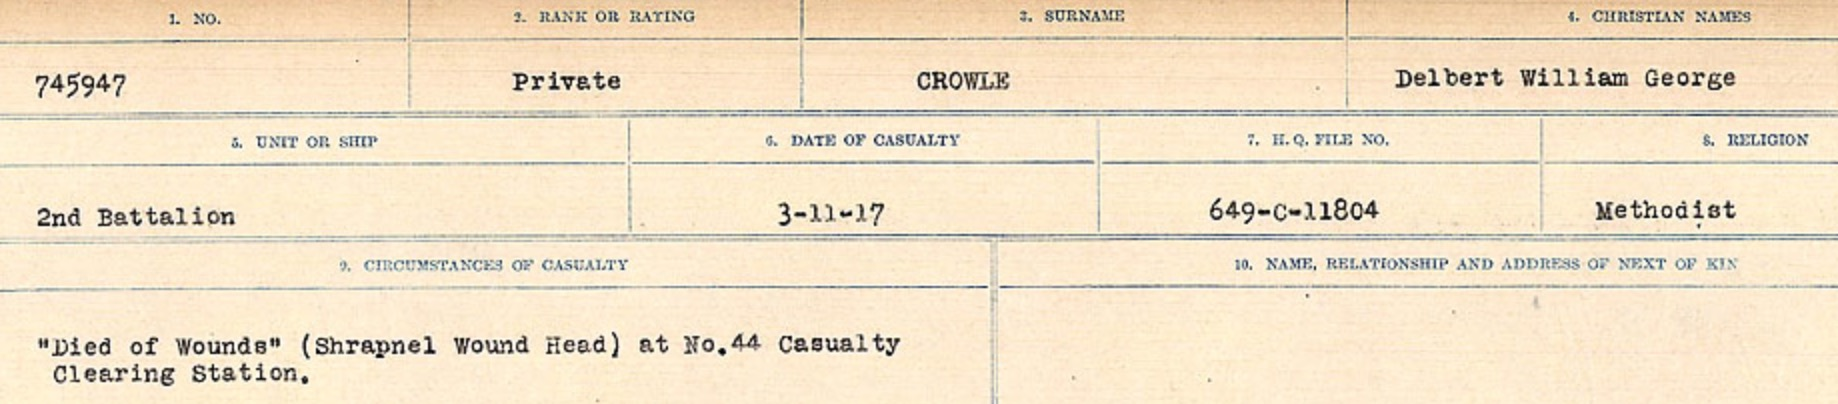 Circumstances of death registers– Source: Library and Archives Canada. CIRCUMSTANCES OF DEATH REGISTERS, FIRST WORLD WAR Surnames: Crossley to Cyrs. Microform Sequence 25; Volume Number 31829_B016734. Reference RG150, 1992-93/314, 169. Page 151 of 890.